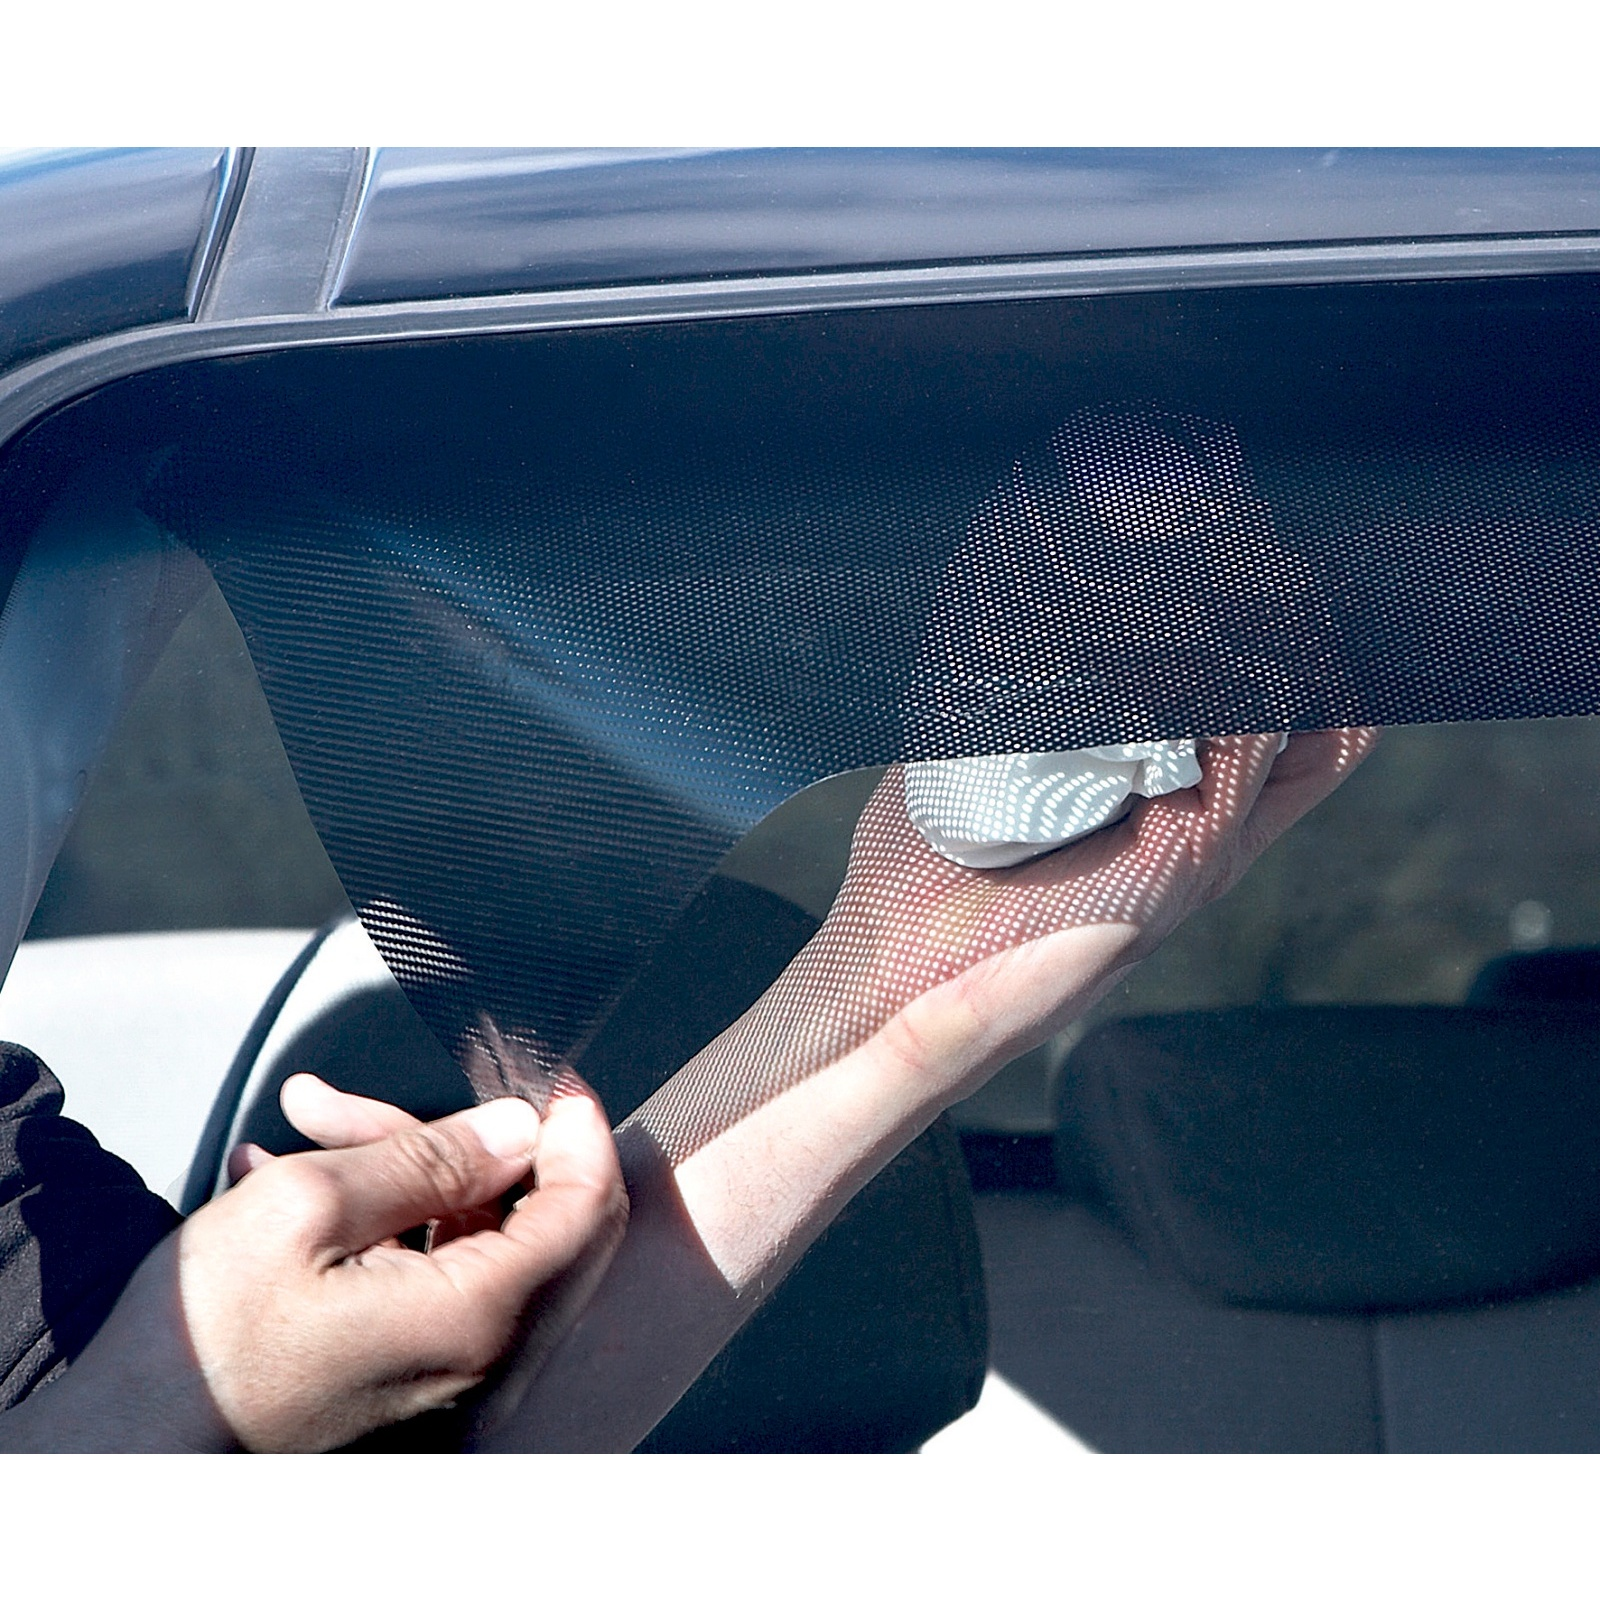 Sun Blocker For Car >> Car Sun Blocker Visor Shade Static Cling Windscreen Film Removable Reusable Wind